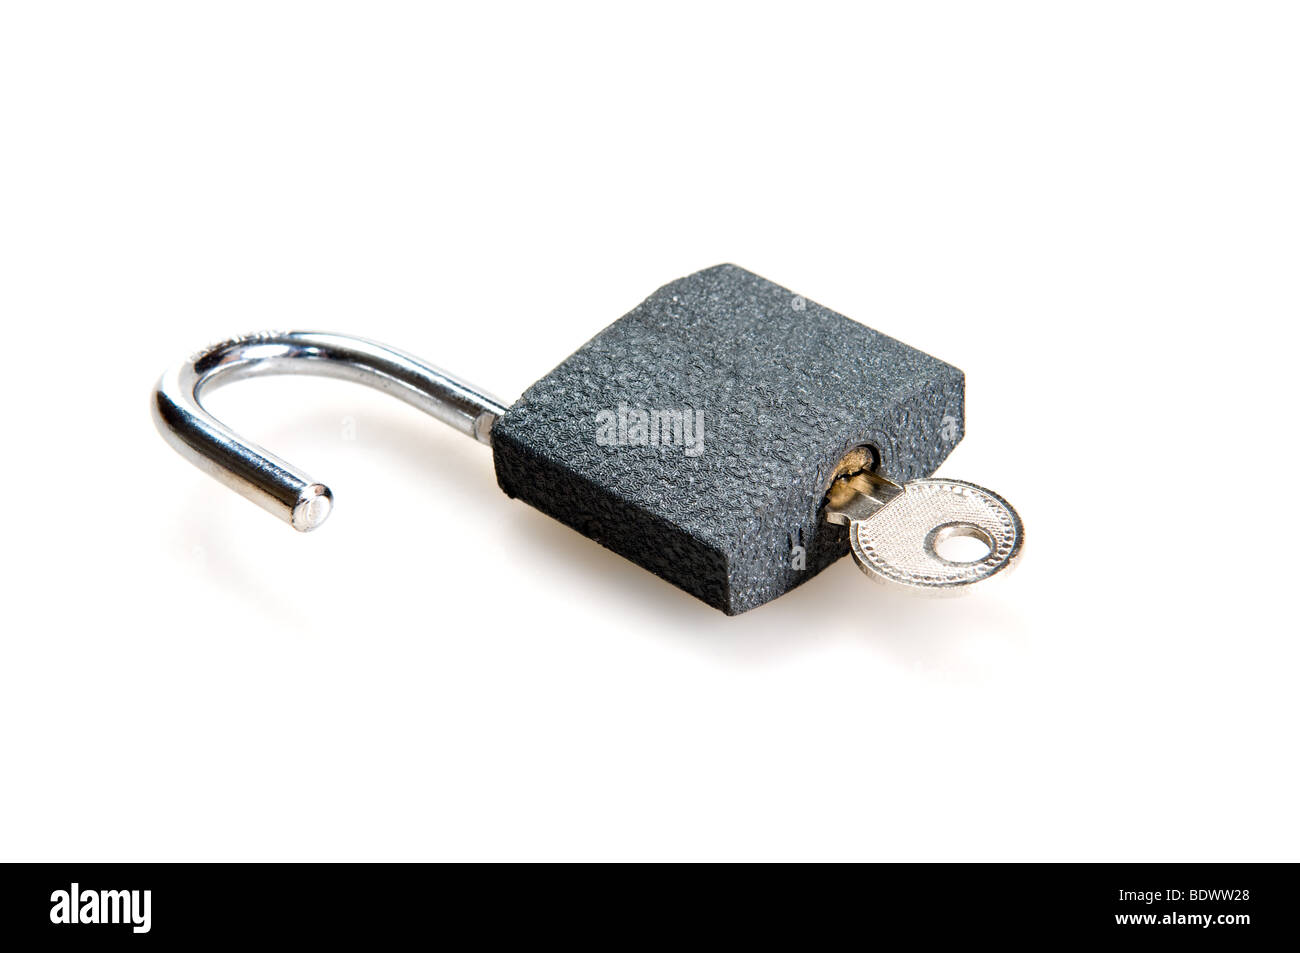 padlock isolated on a white background - Stock Image